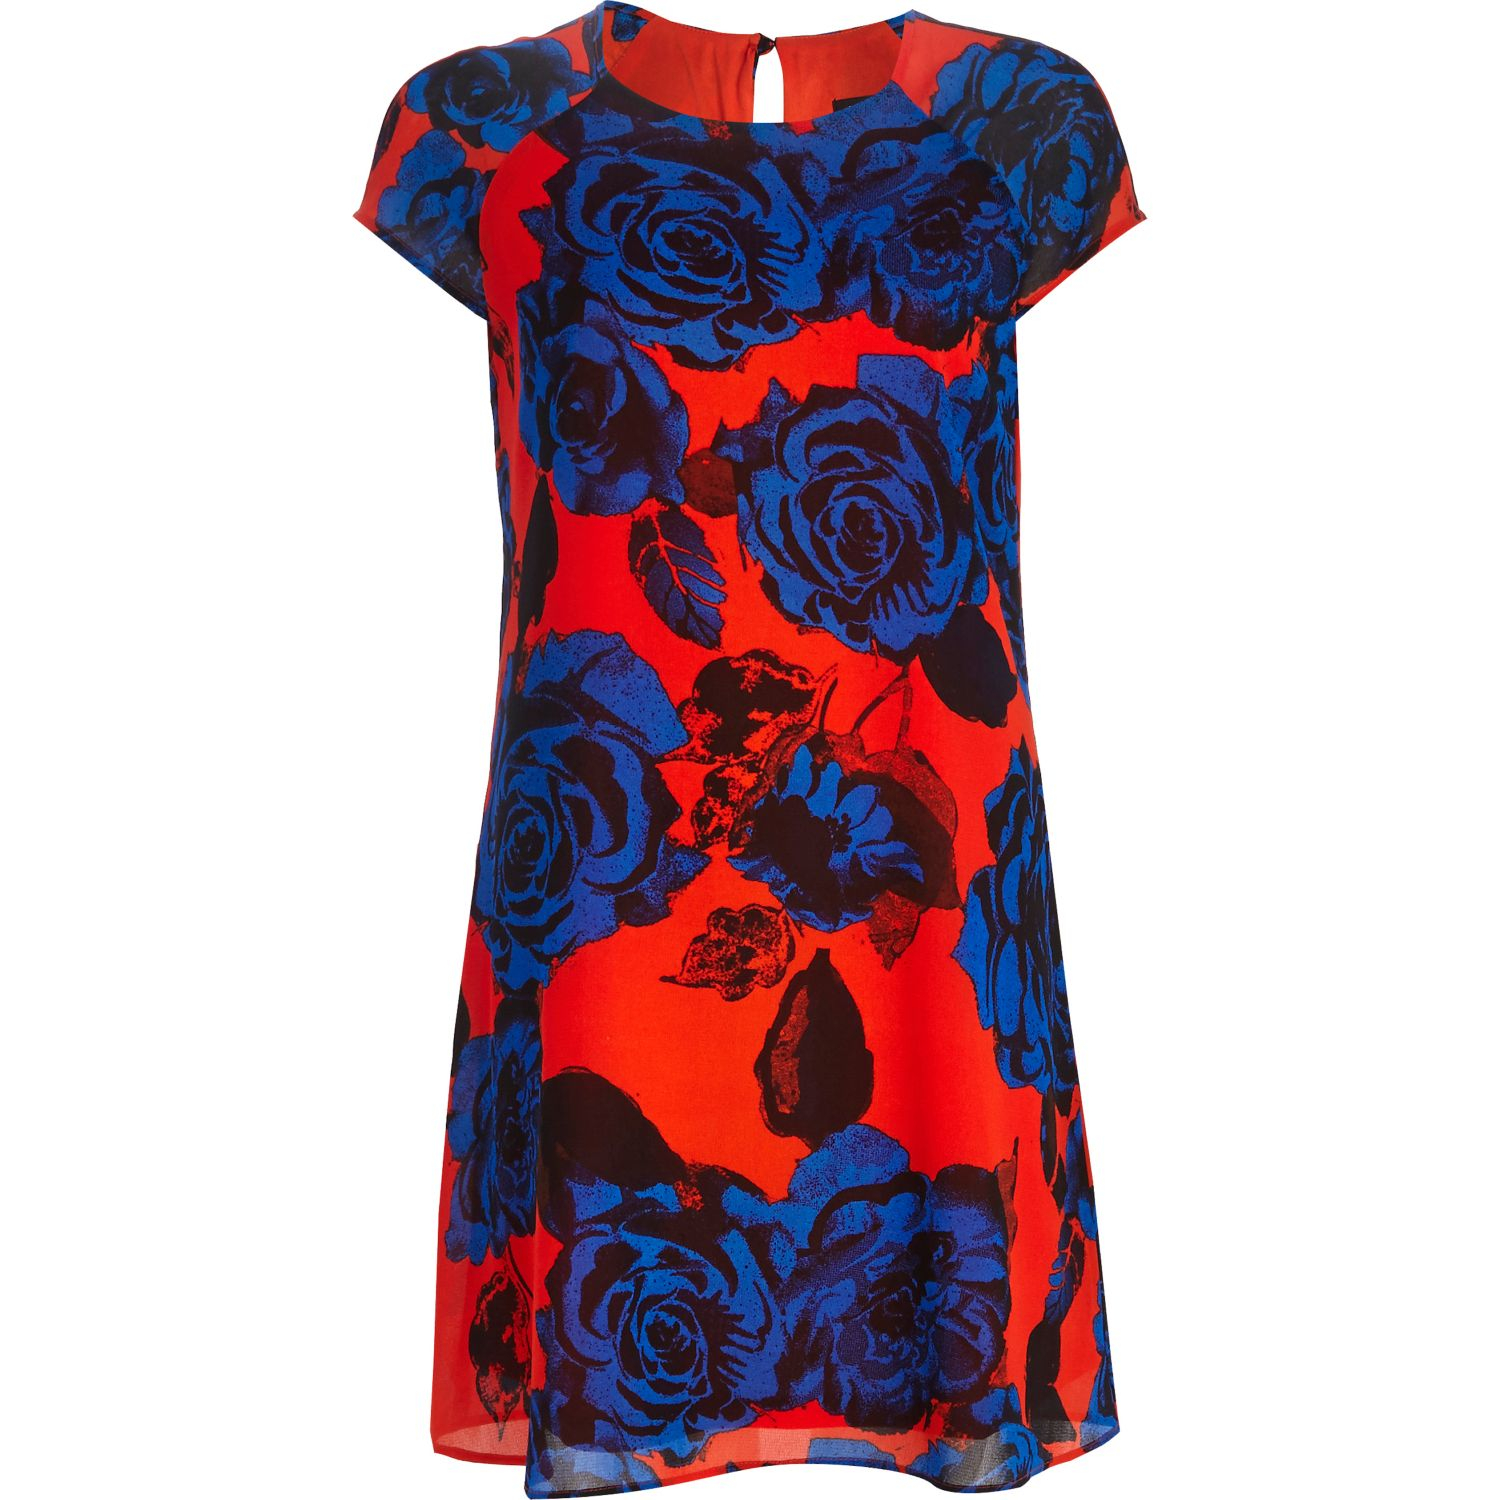 2963e862fa59 River Island Red Floral Print Swing Dress in Blue - Lyst